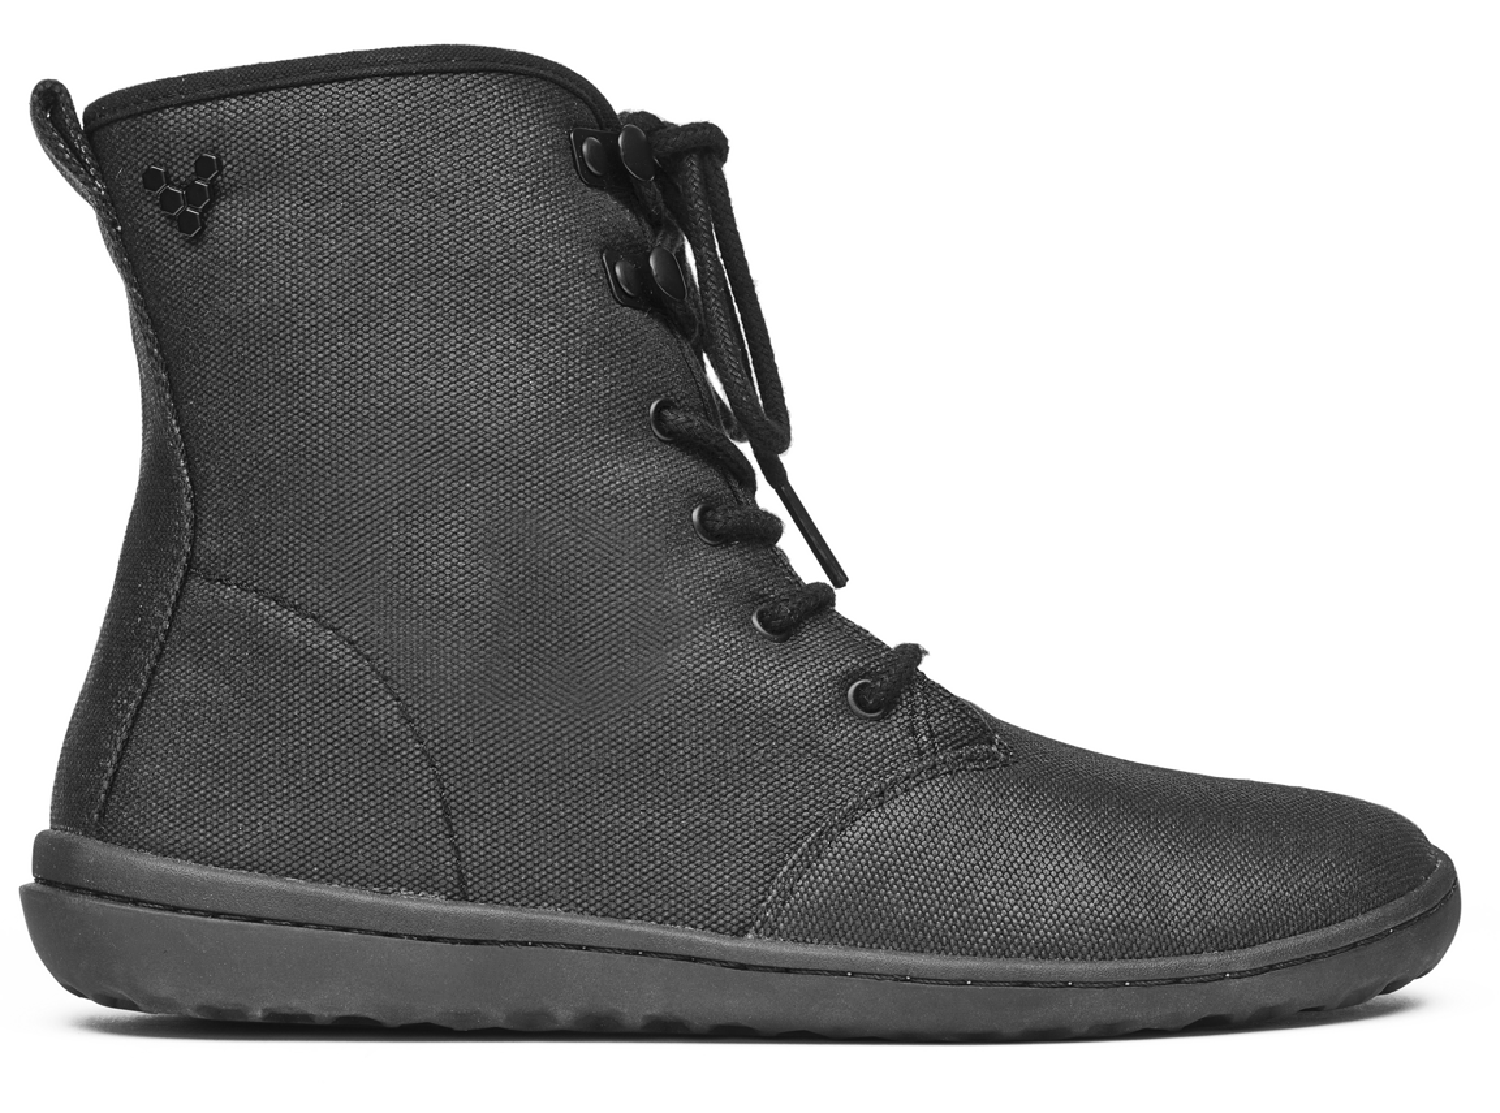 Vivobarefoot GOBI HI TOP L Eco Canvas Black